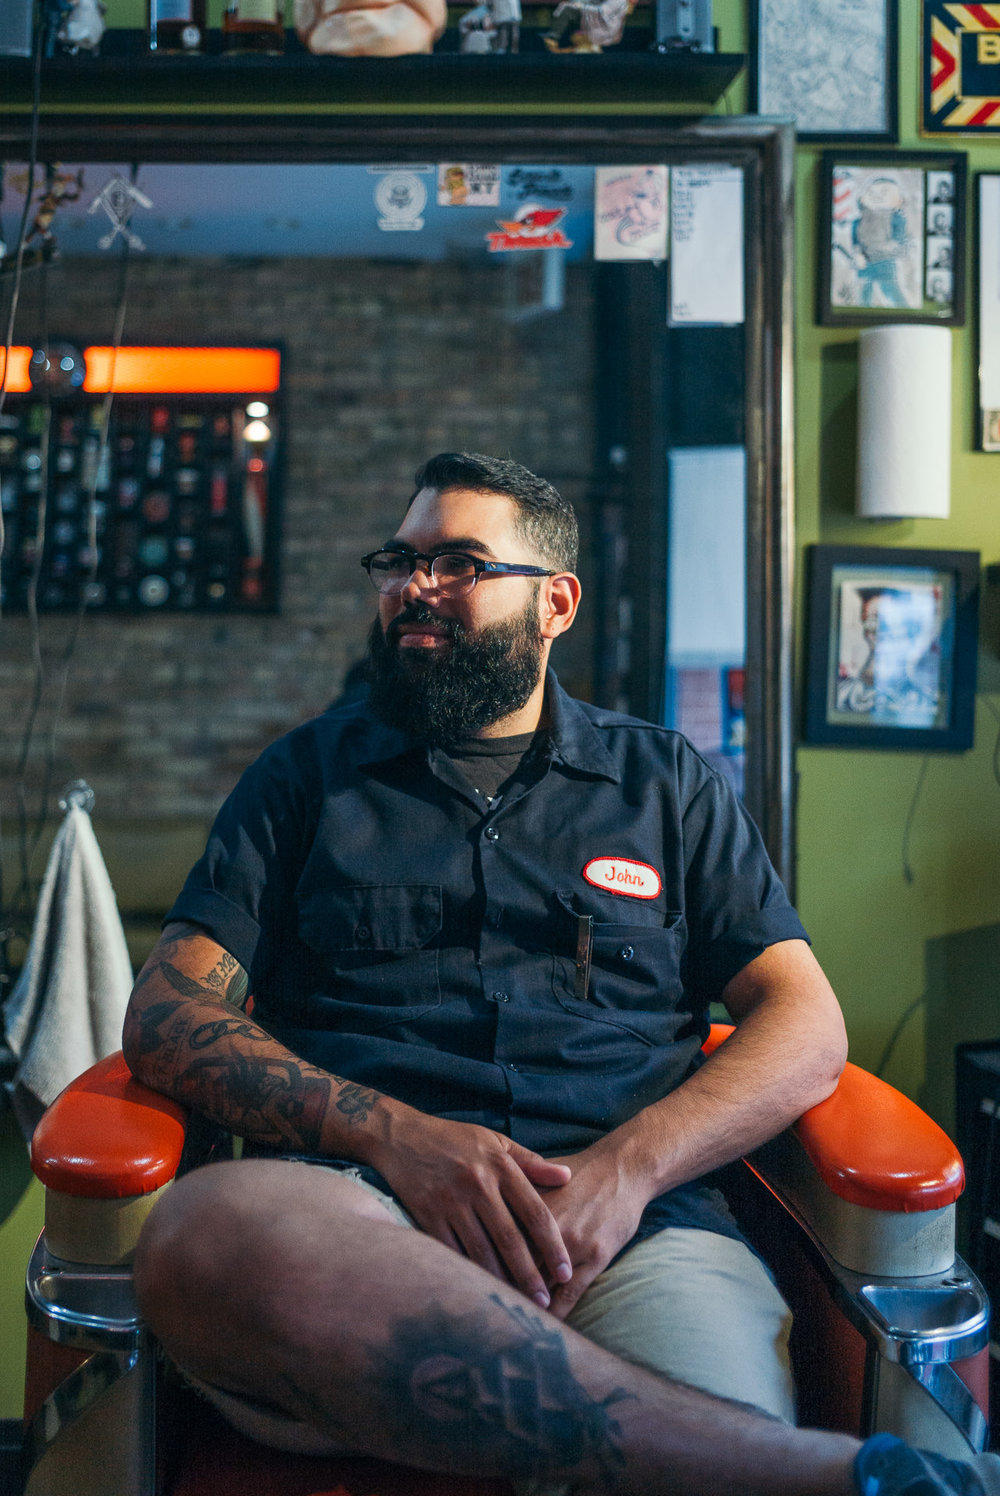 petes_barber_shop_chicago_johnny.jpg